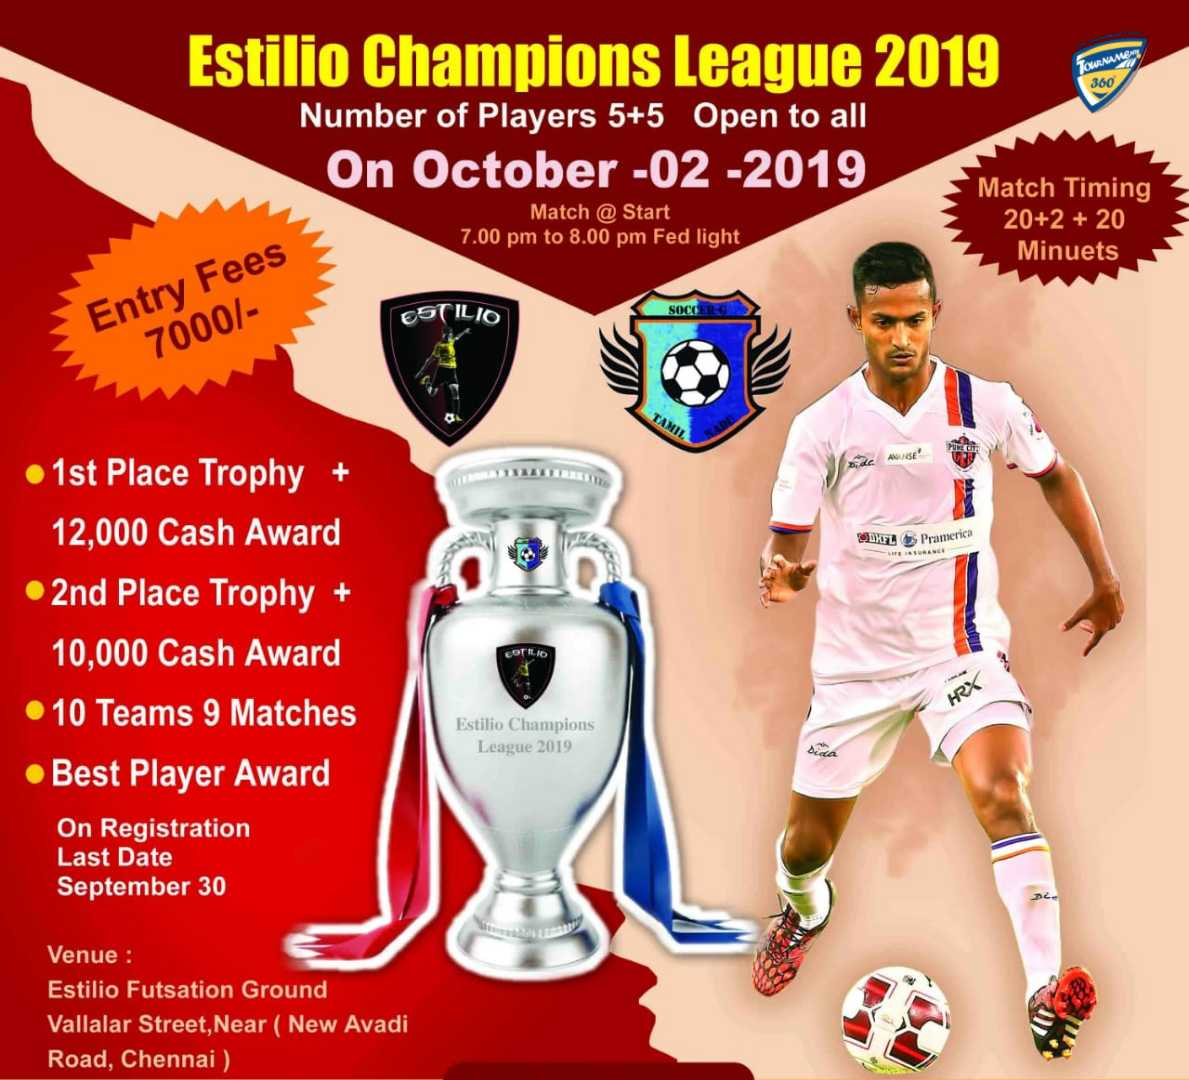 Estilio Champions League 2019